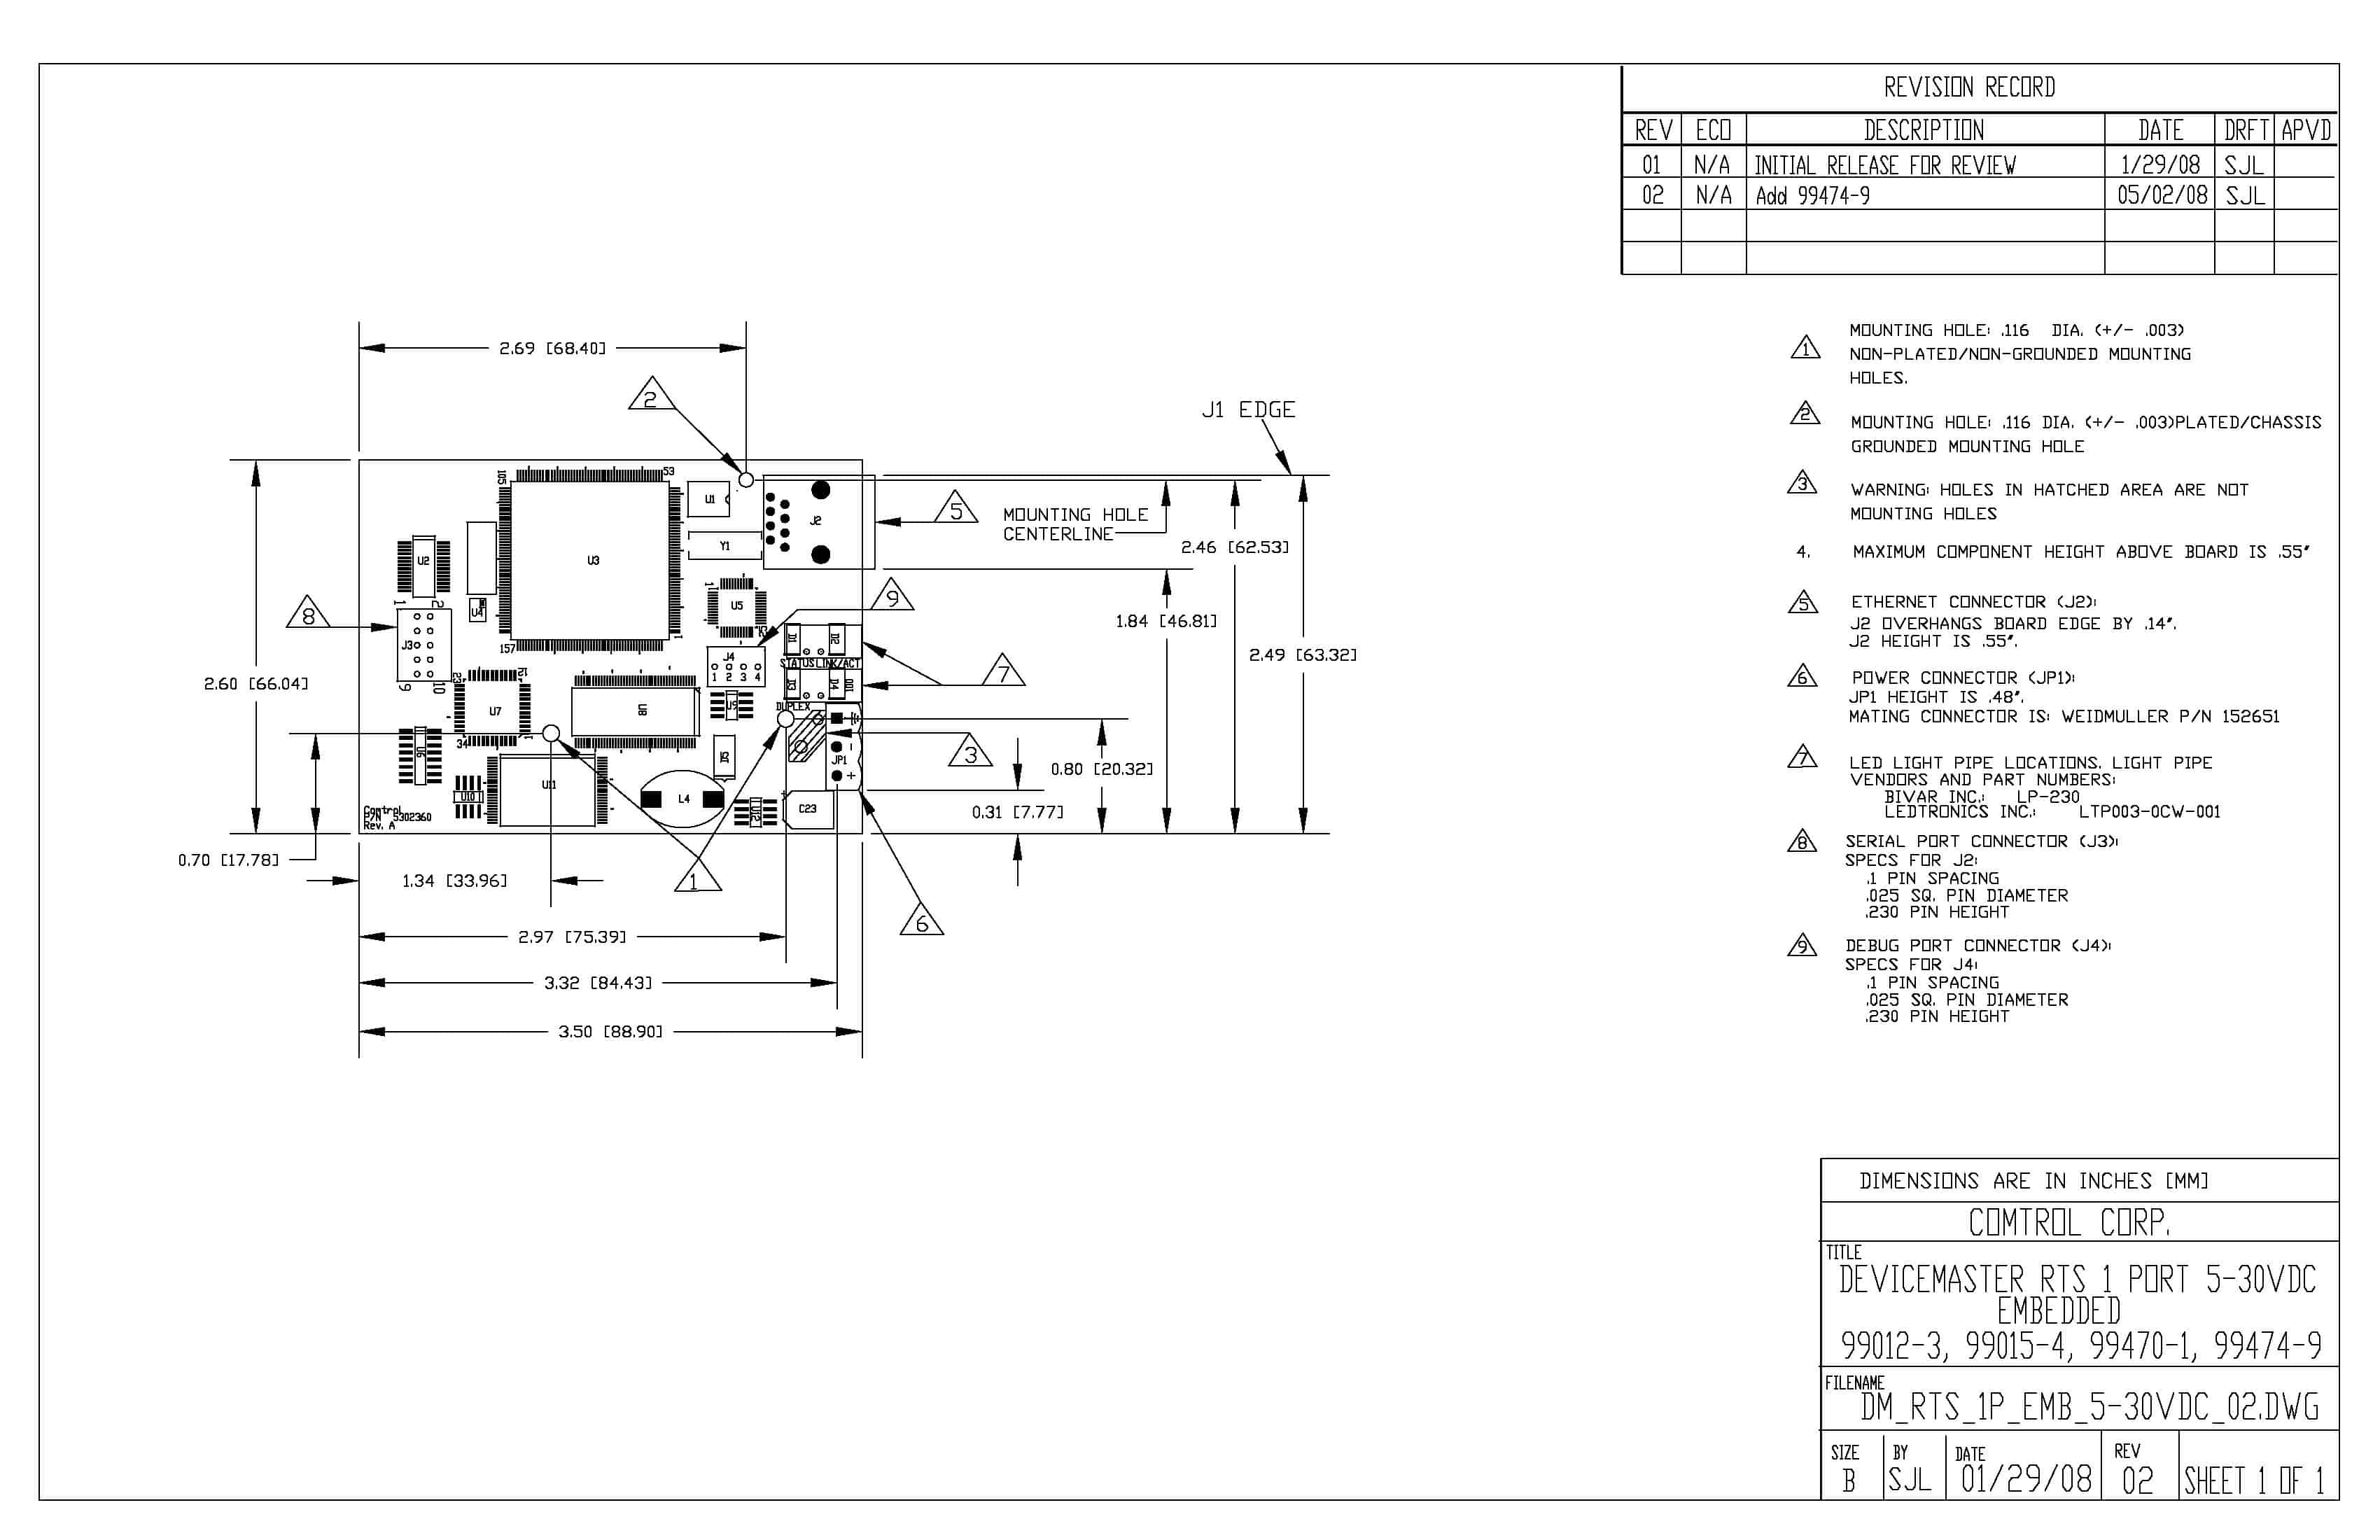 Devicemaster Rts Vdc 1 Port Embedded Db9 Comtrol Corp Power Over Ethernet Rocketlinx Serial Device Server View Engineering Drawing